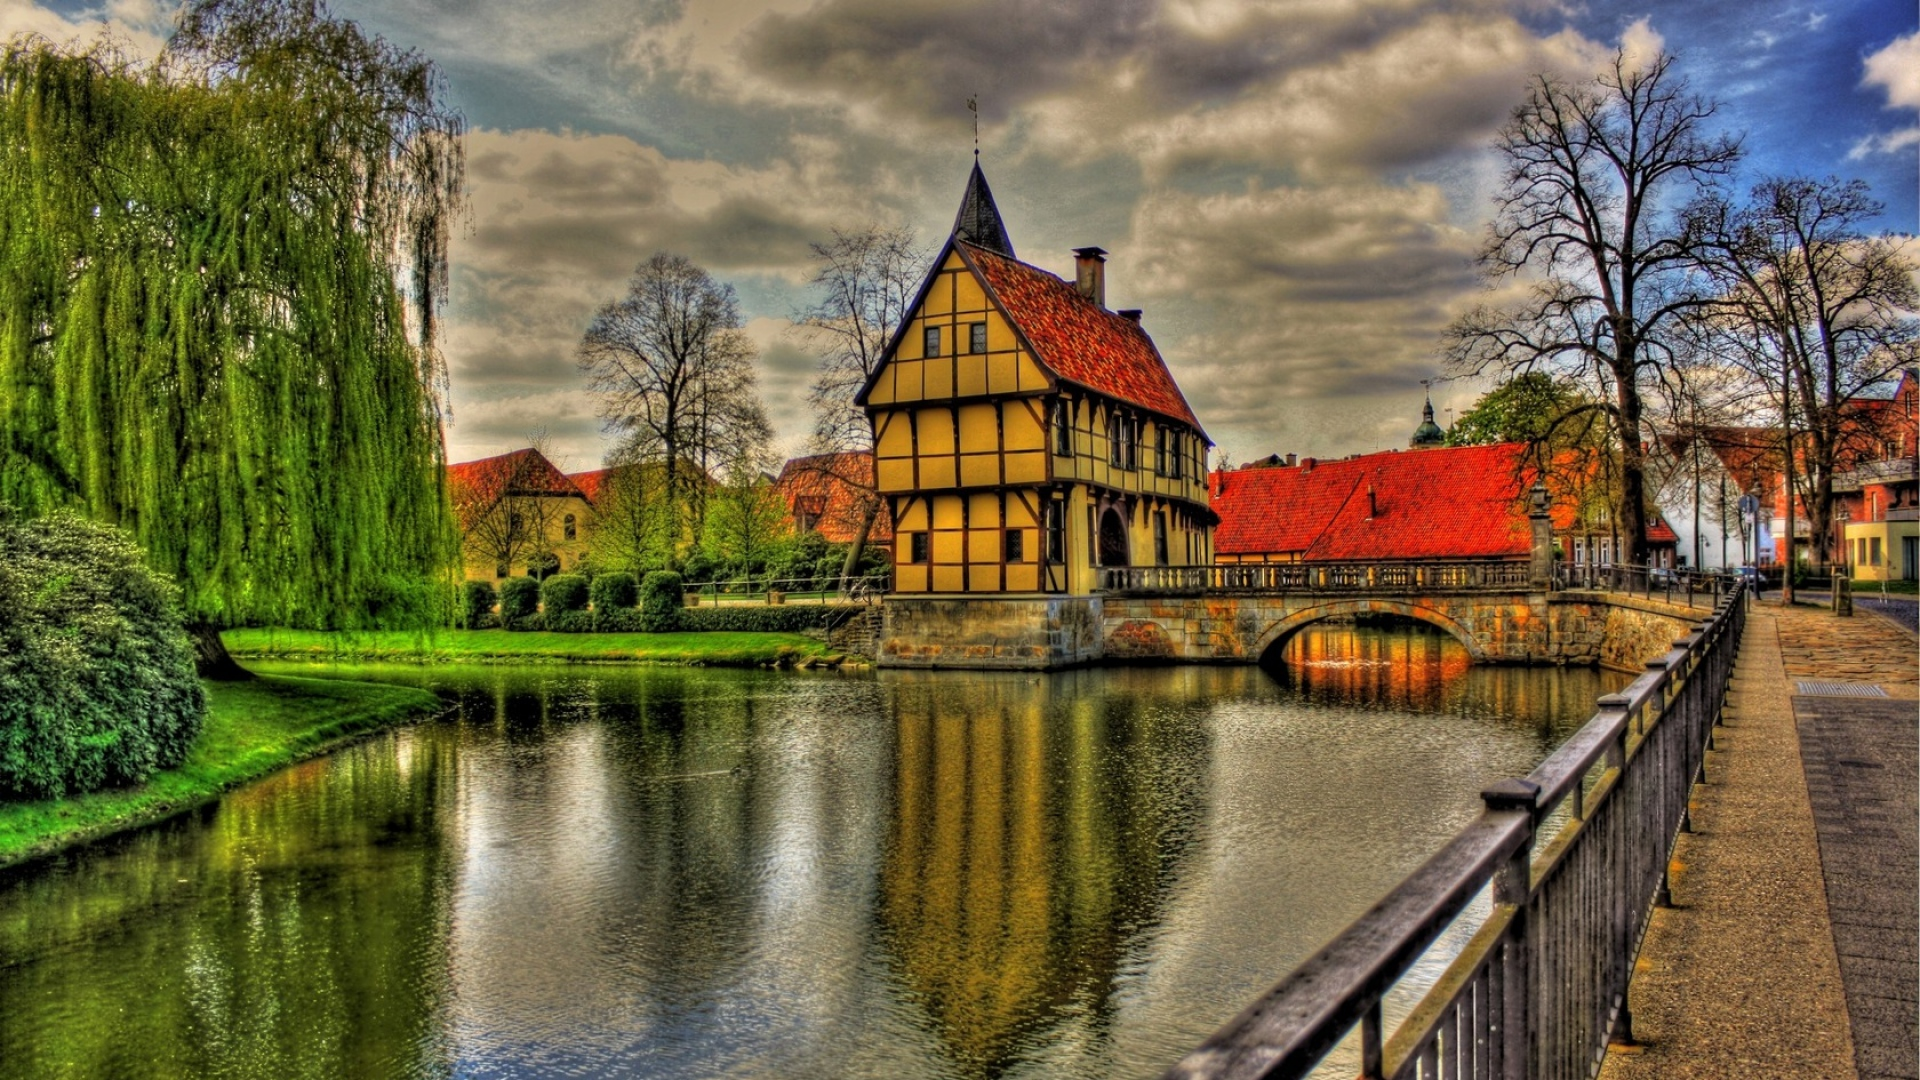 download wallpaper 1920x1080 germany architecture beauty bridge